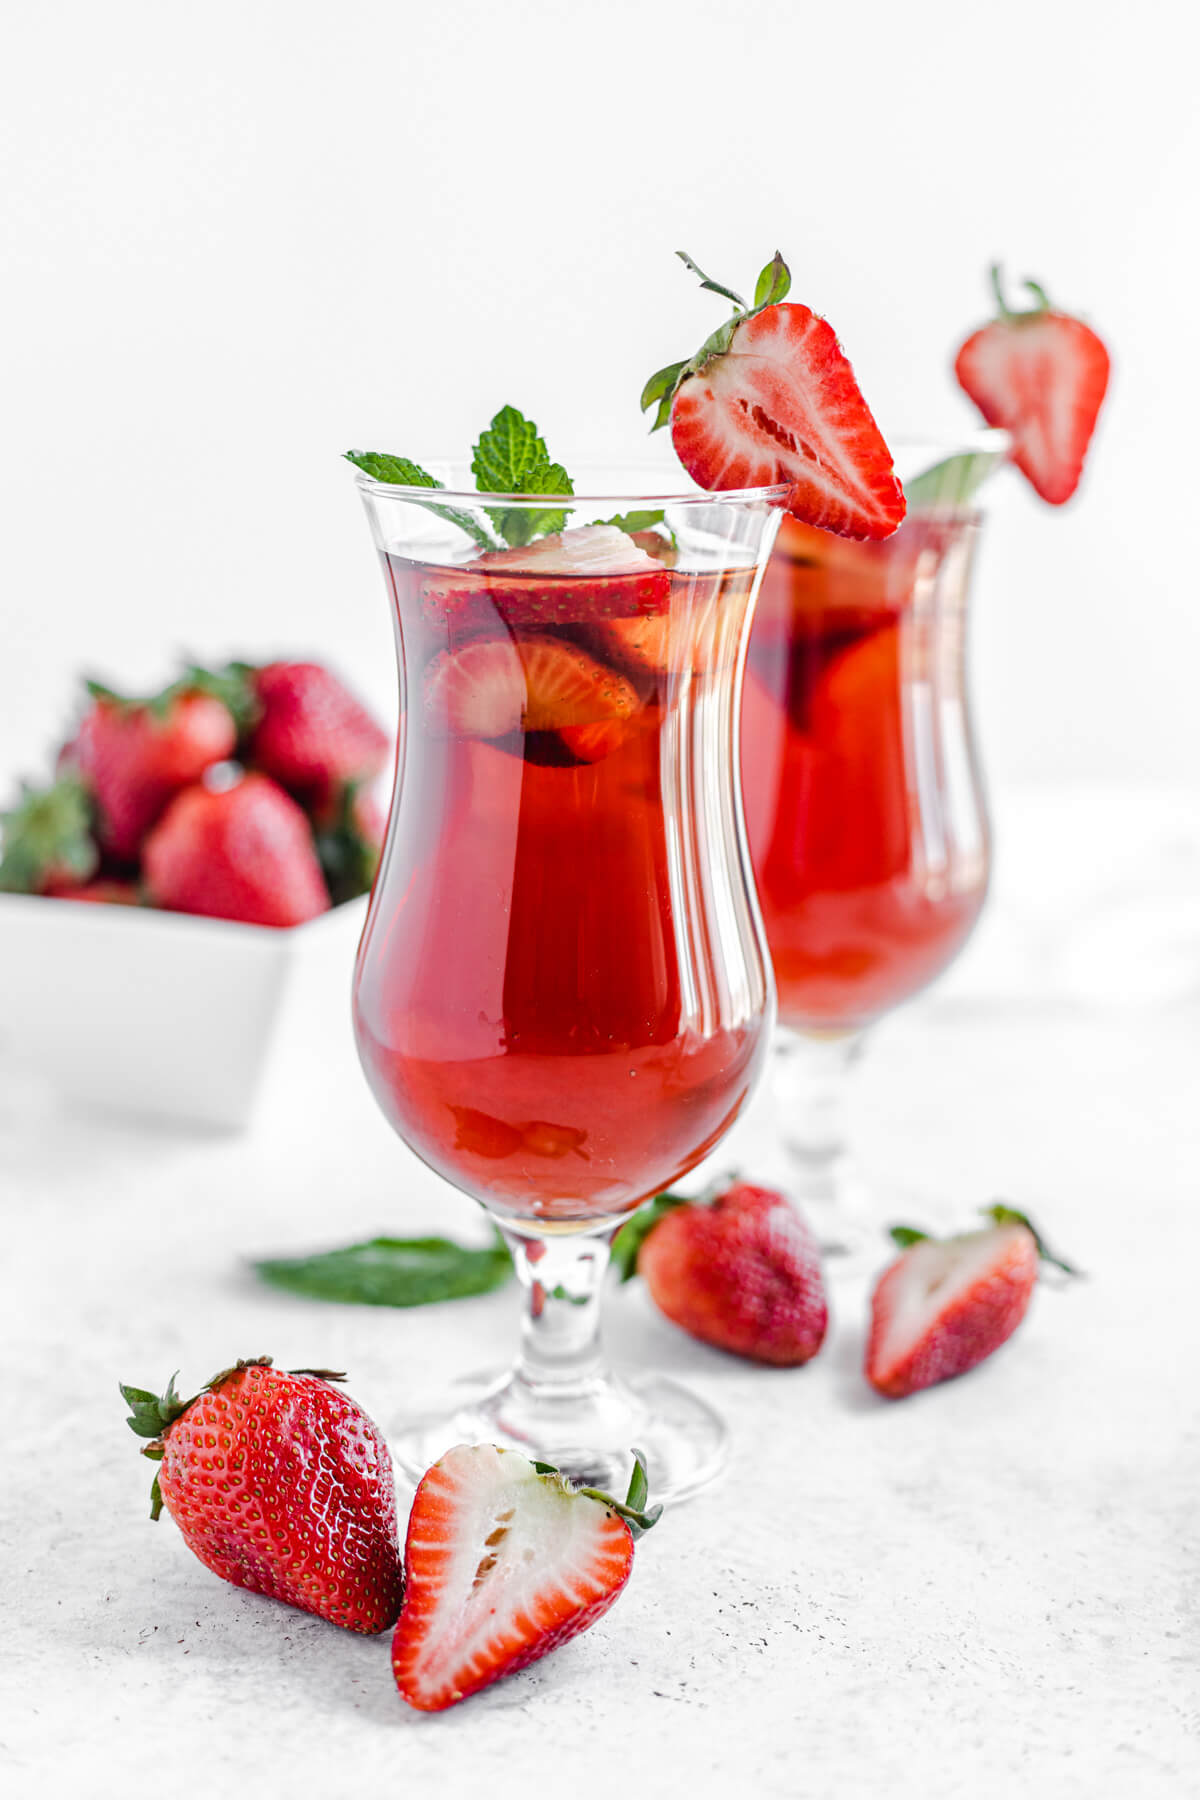 two glasses of iced tea with fresh mint and strawberries inside